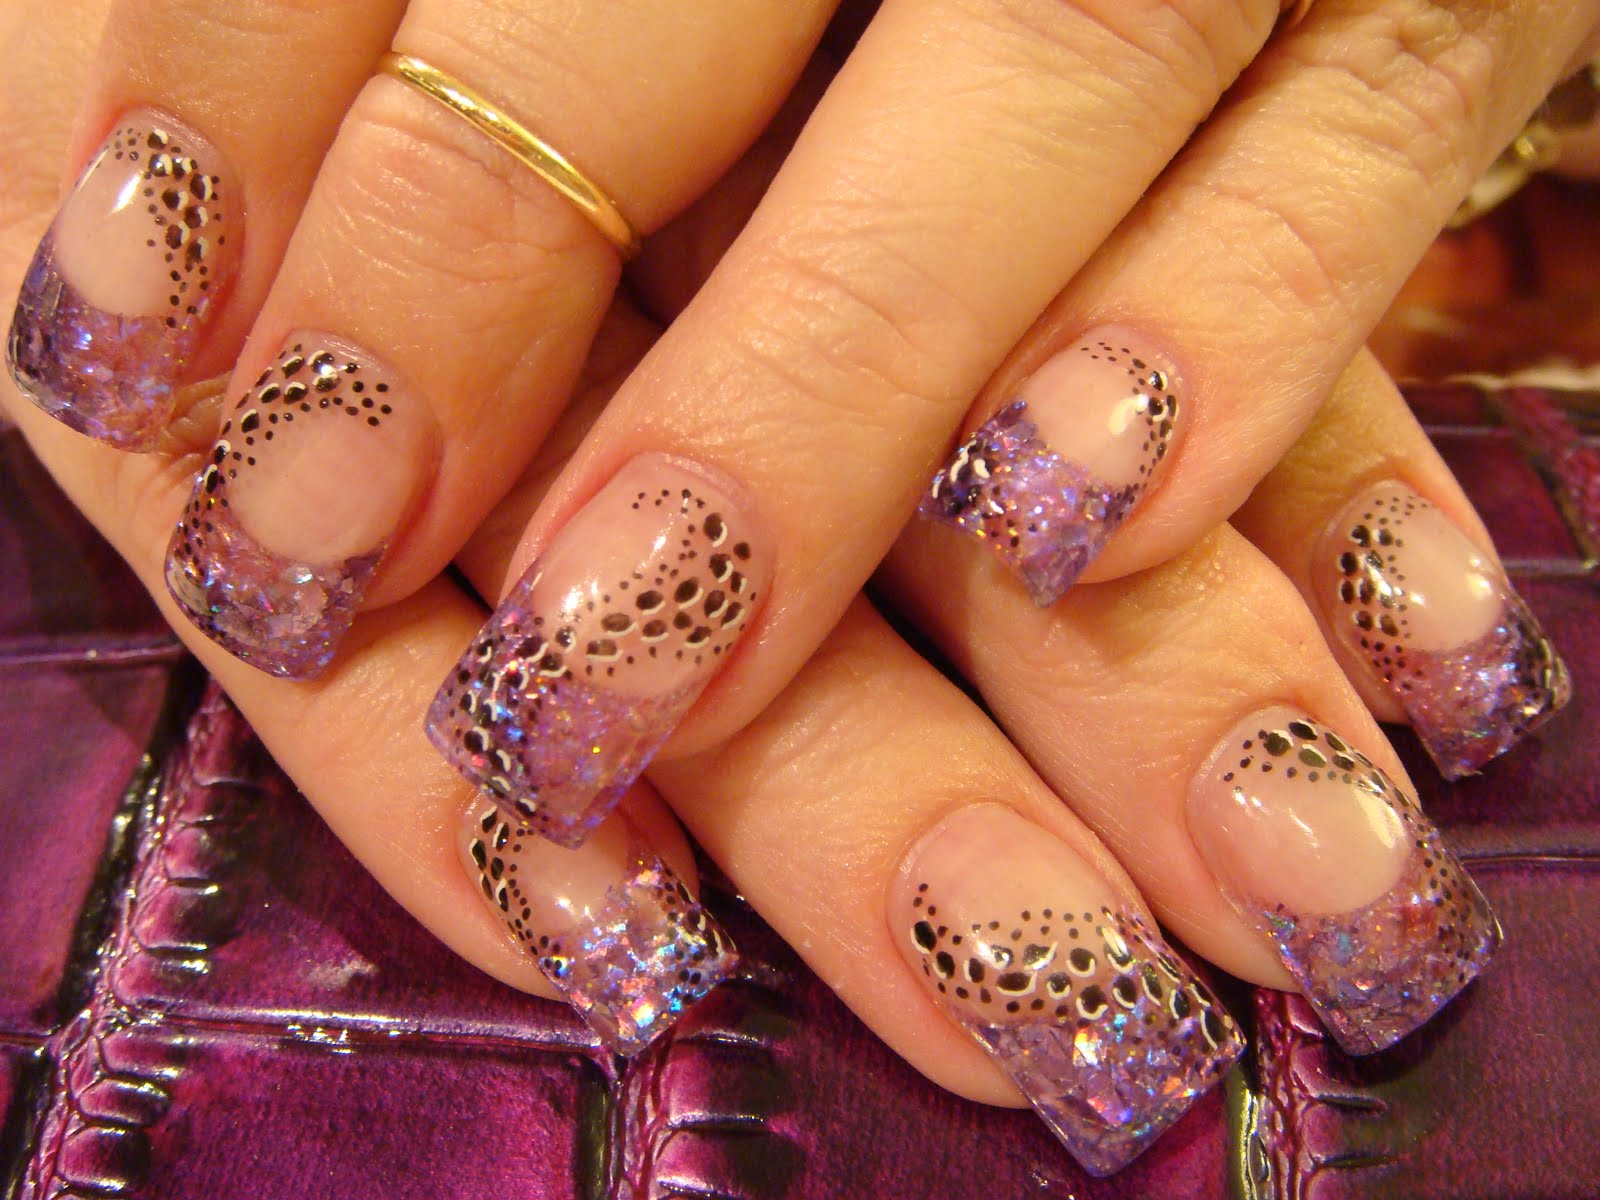 Cute Acrylic Nails Tumblr 2014